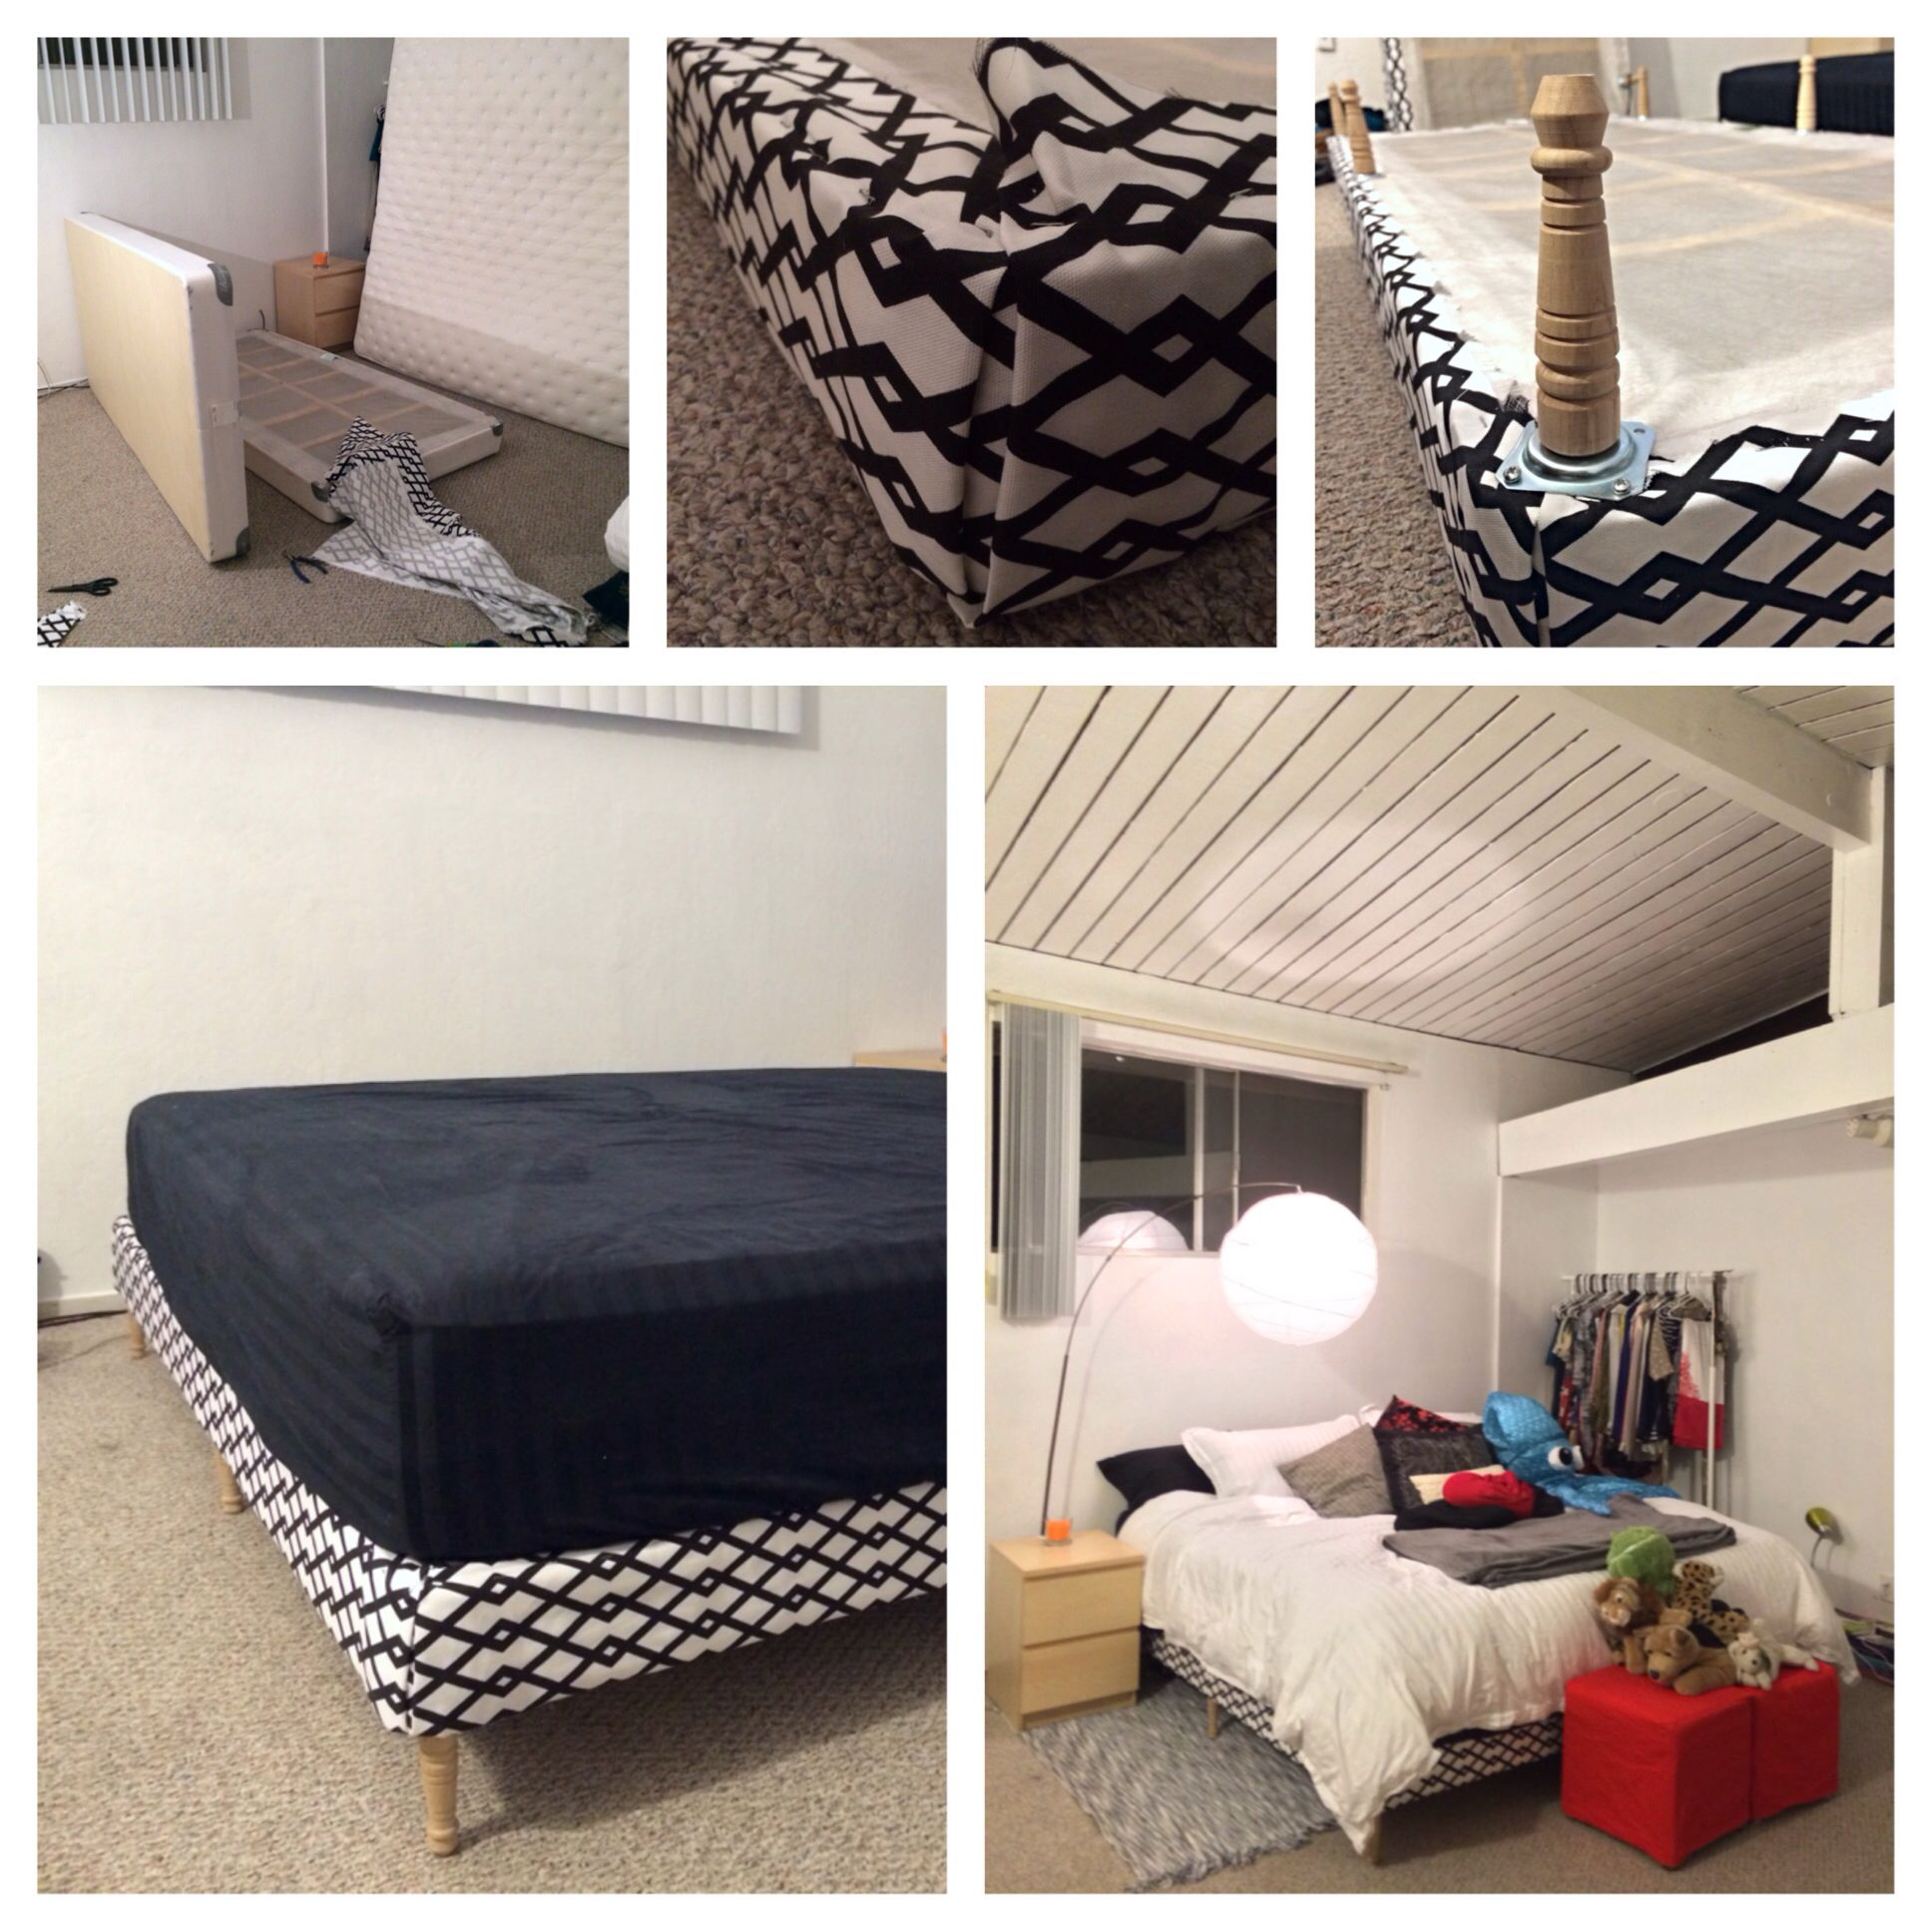 Diy Upholstered Box Spring And Bed Legs Success Furniture Bed